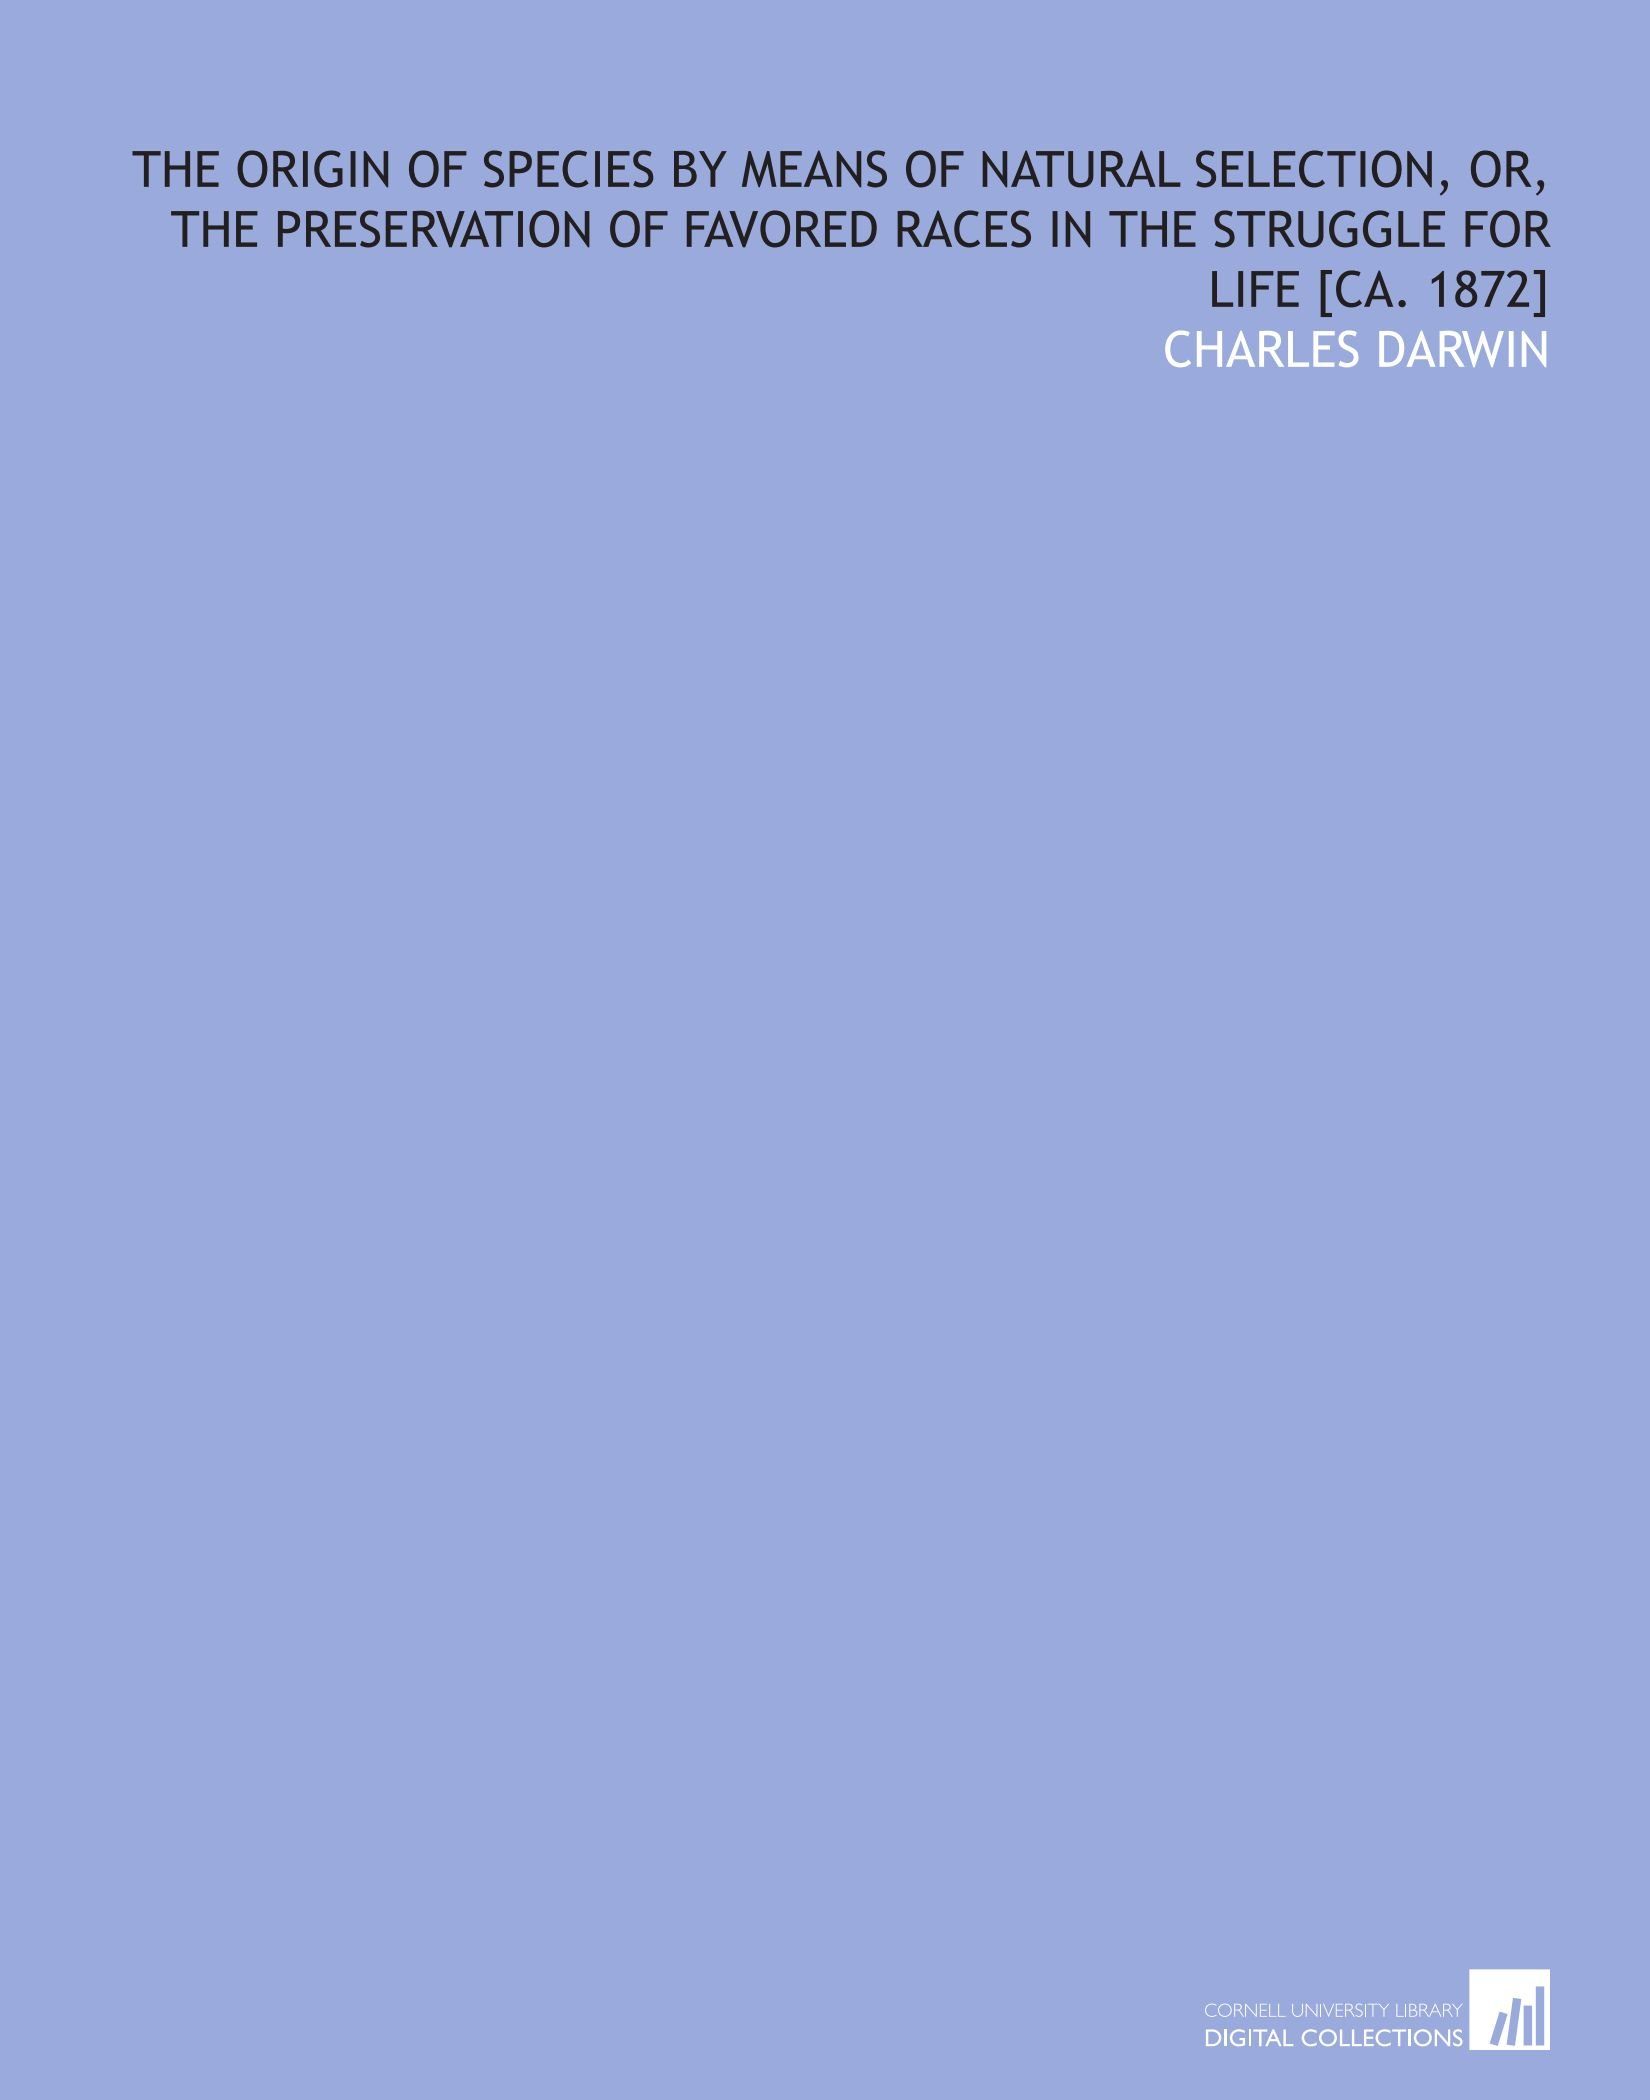 Download The origin of species by means of natural selection, or, The preservation of favored races in the struggle for life [ca. 1872] ebook